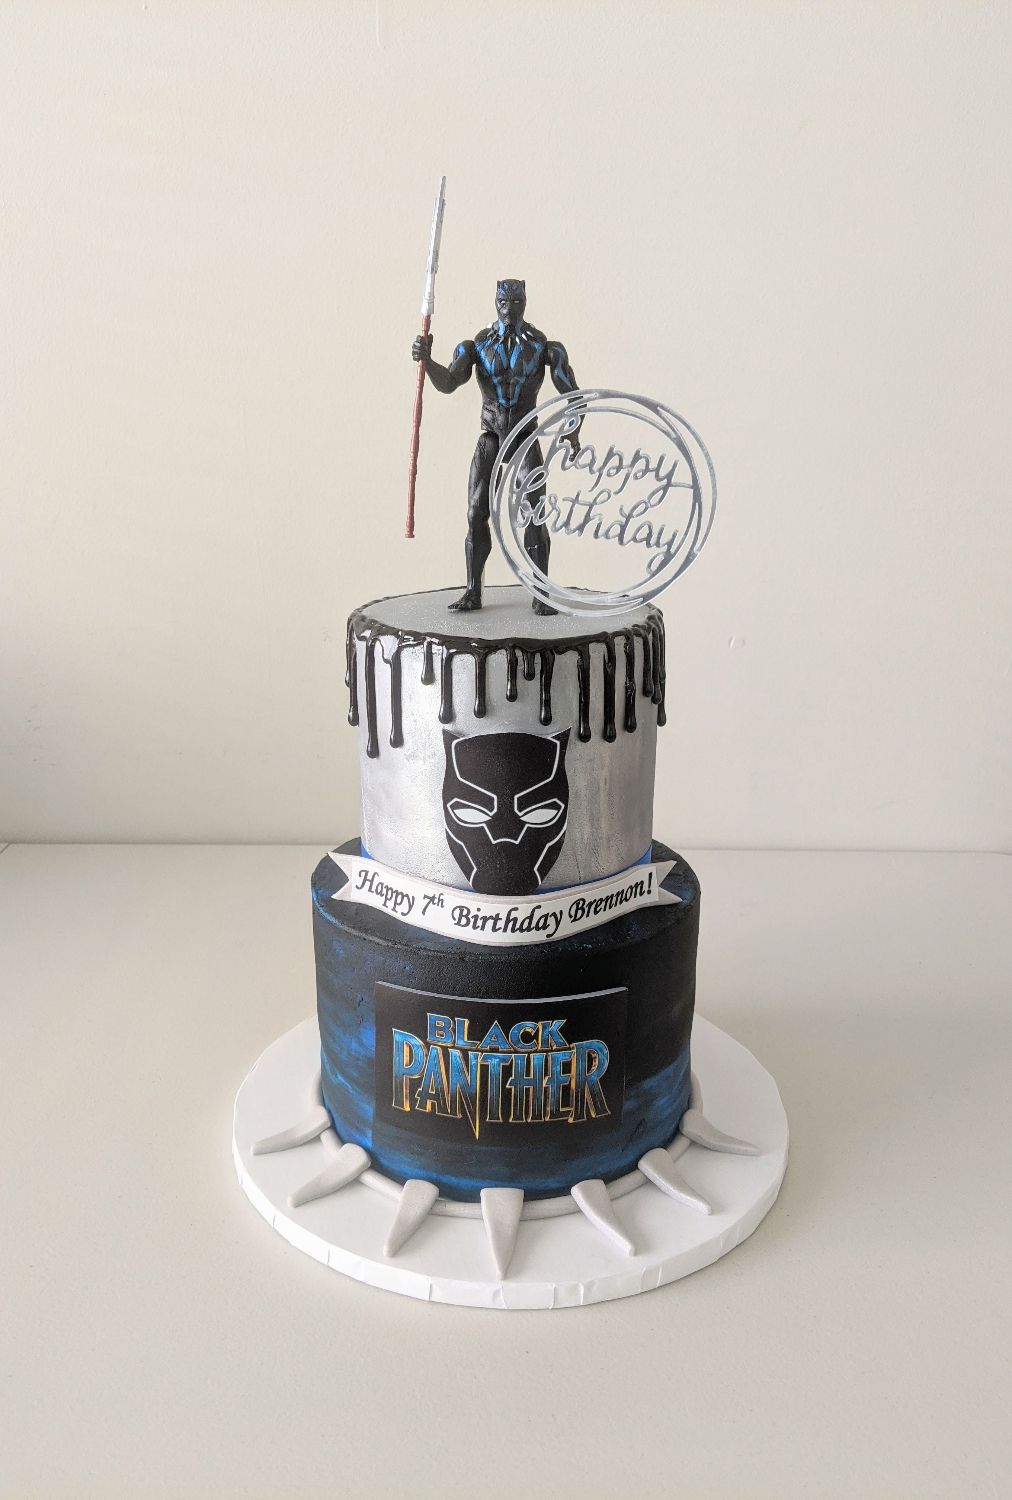 Black Panther Birthday Cake